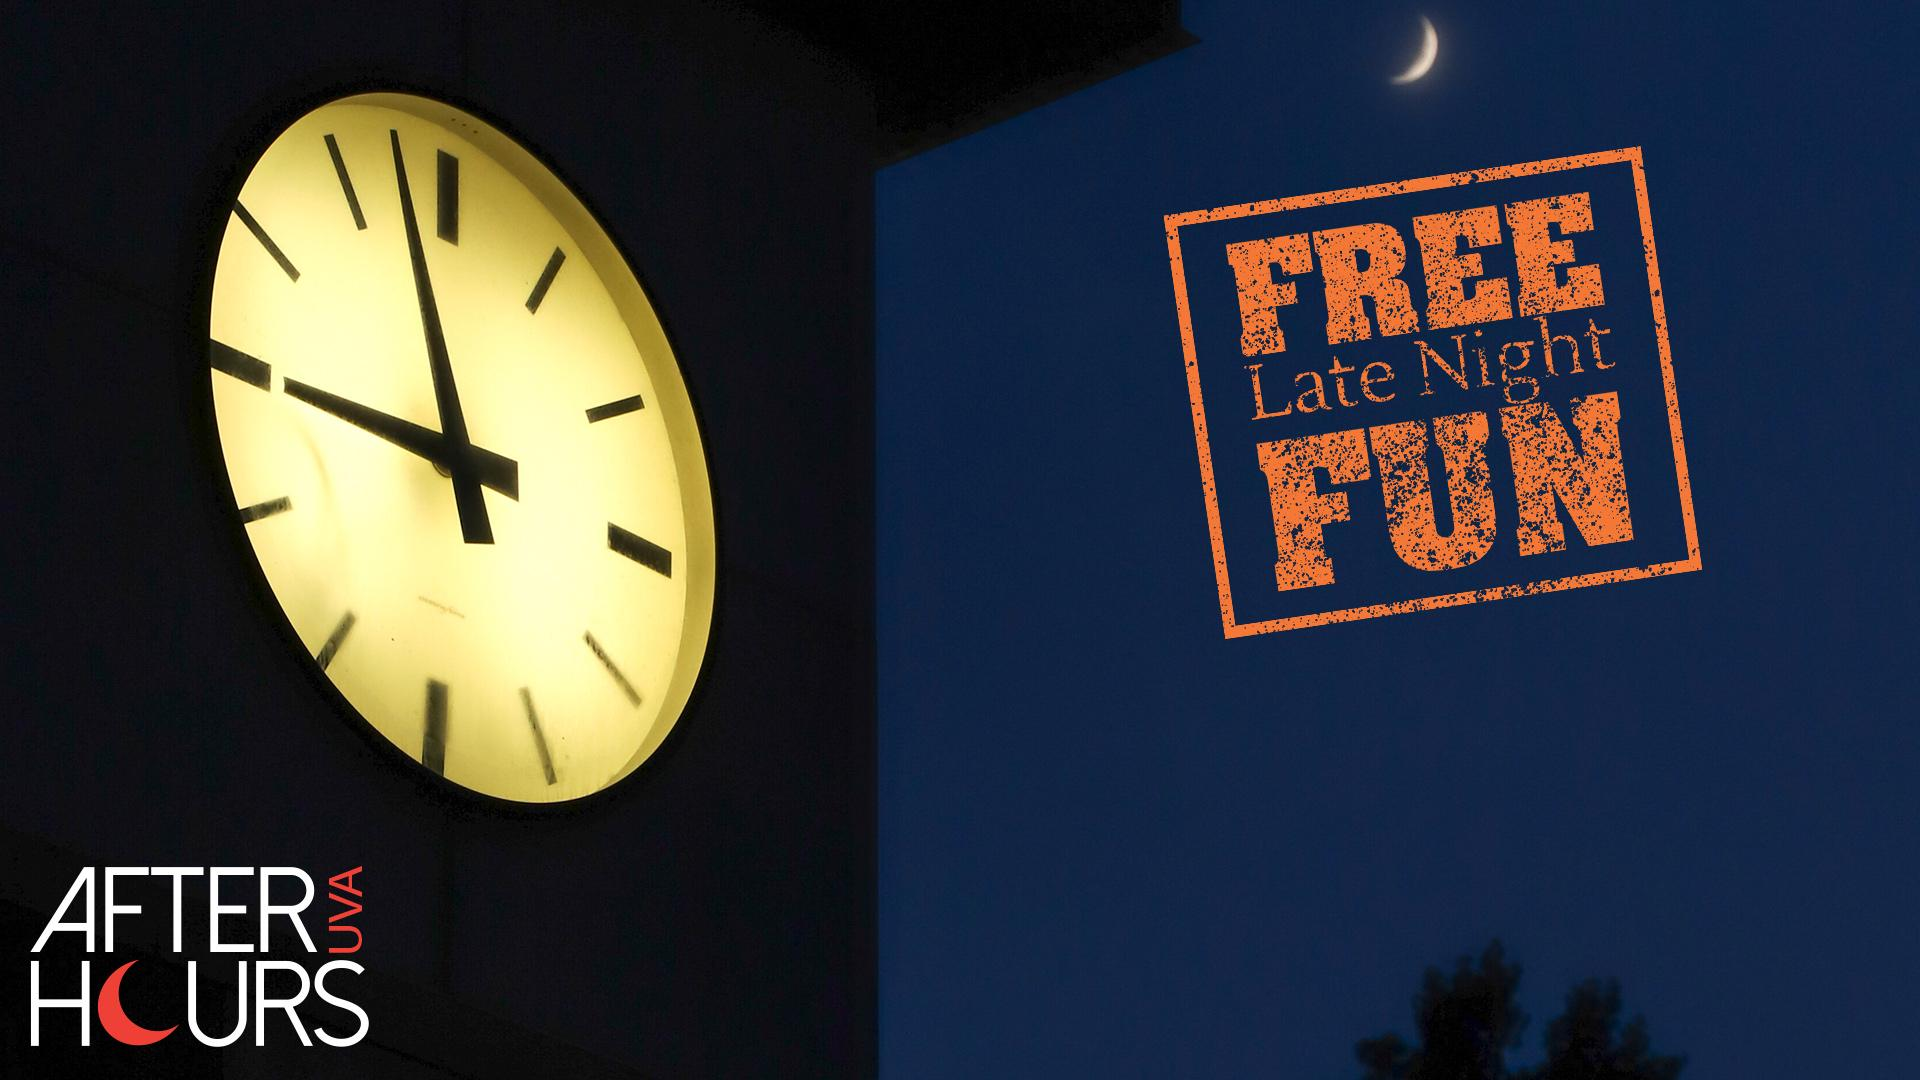 UVA After Hours FREE Late Night Fun for Students